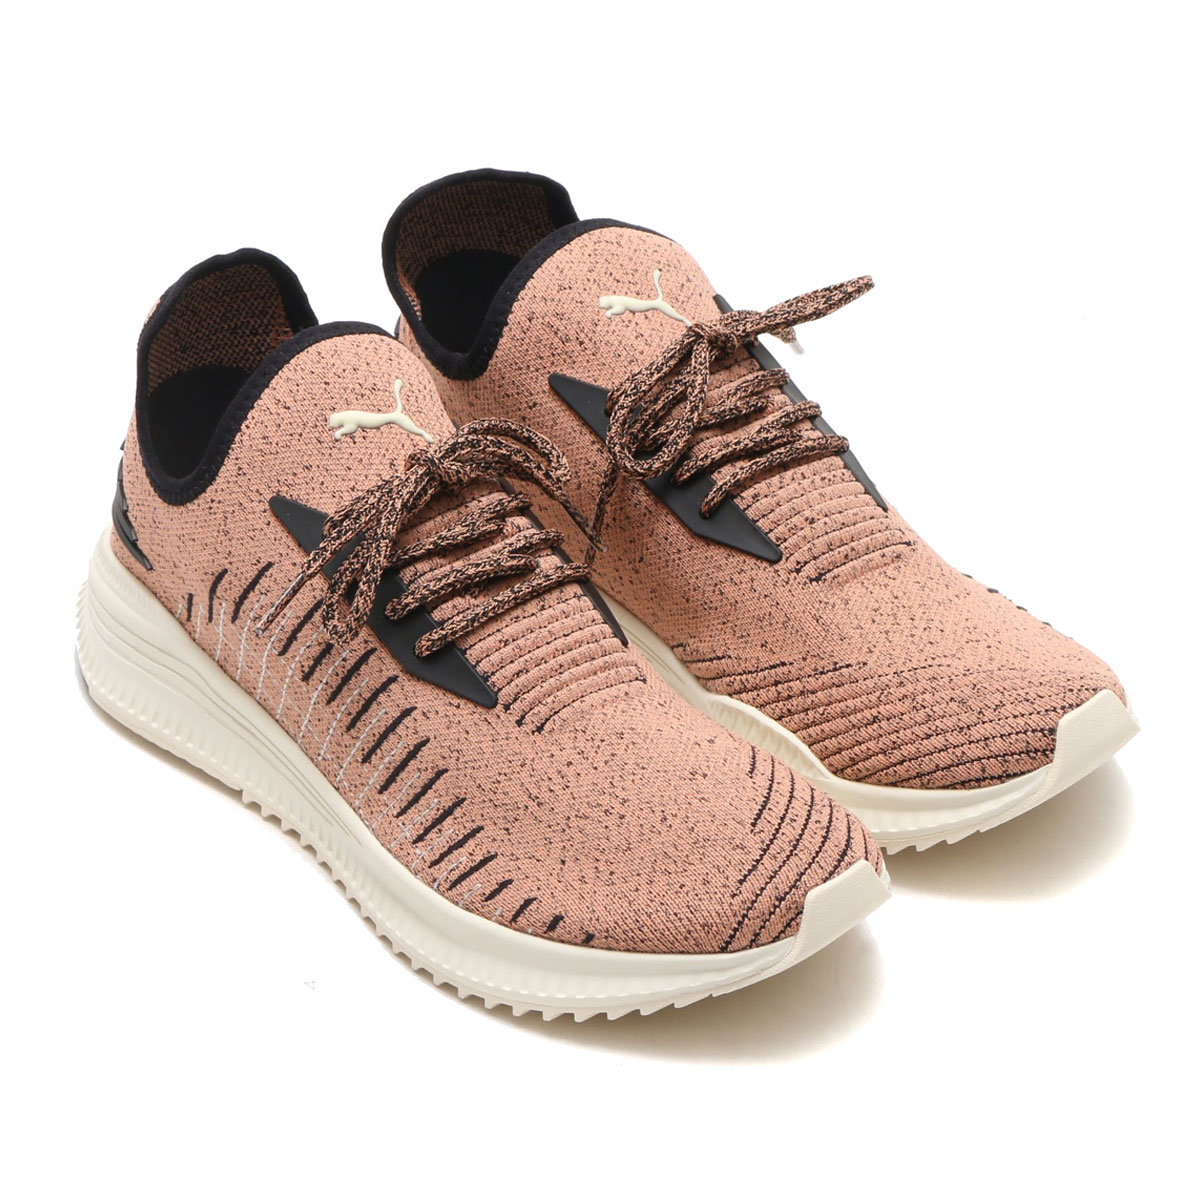 43a5e1d619a028 It is the new street running shoe which dropped the smooth silhouette of  performance shoes into the same street. I comprise a cut tightening laceup  textile ...